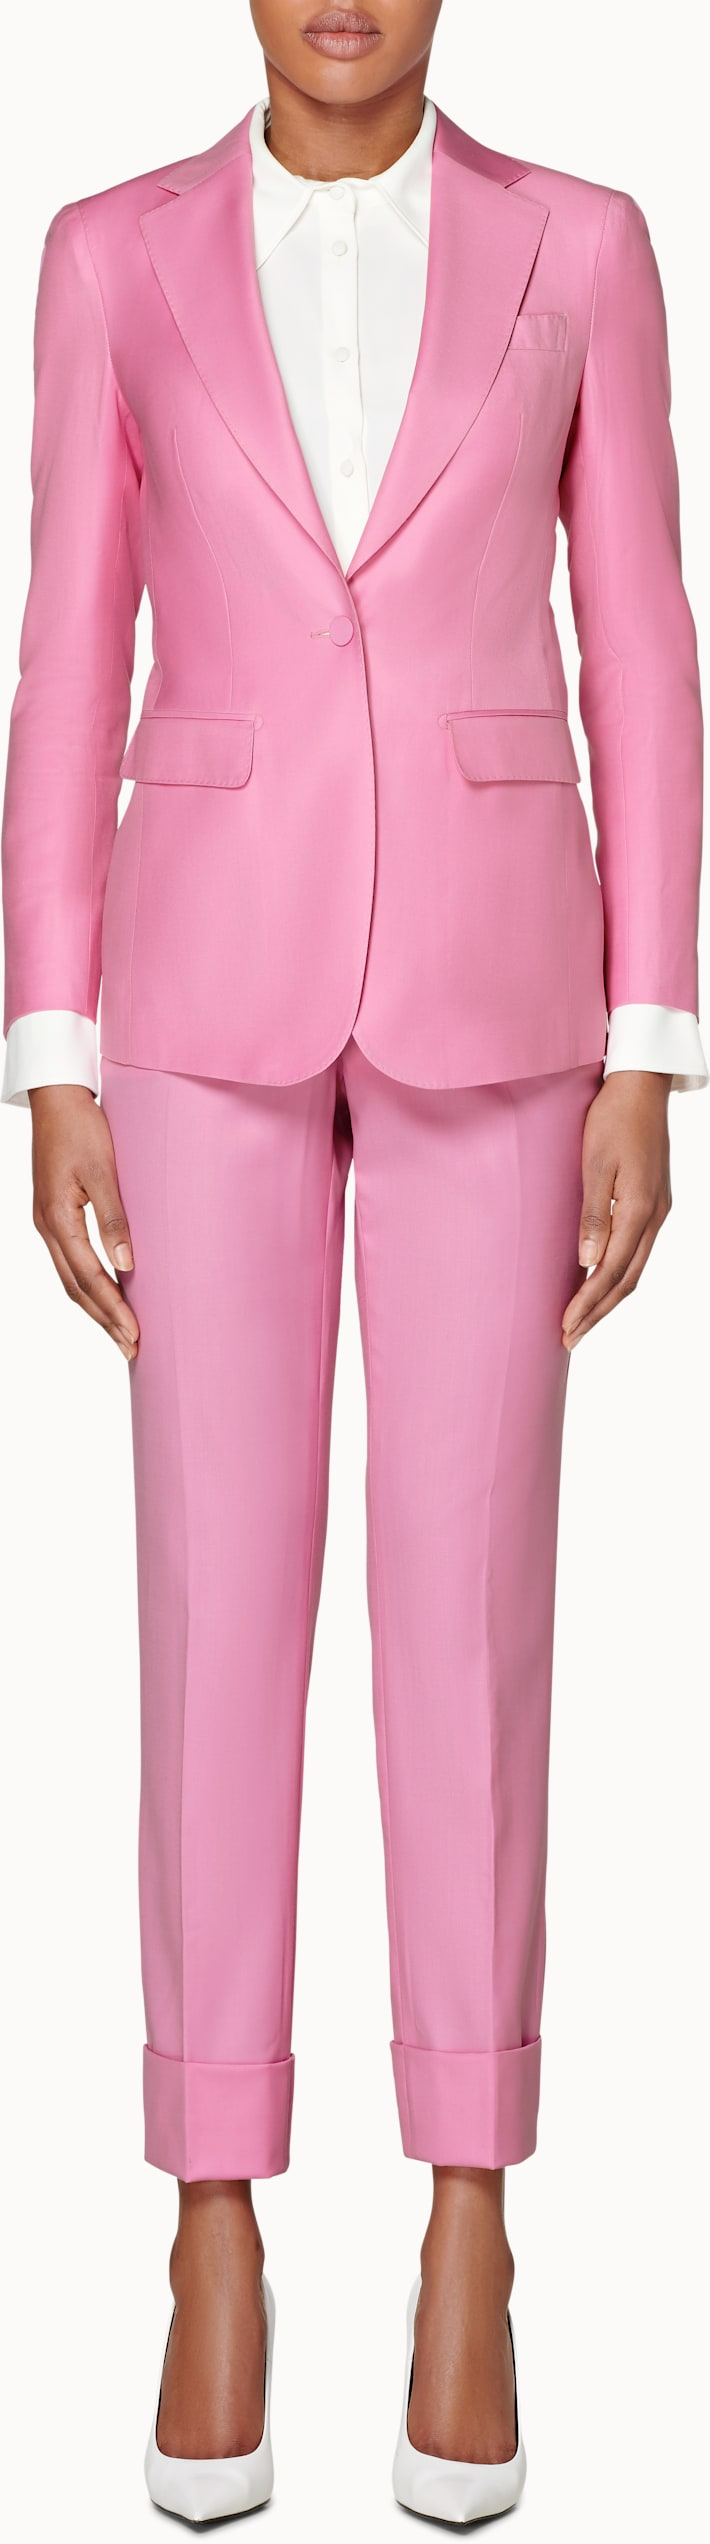 Cameron Pink Suit